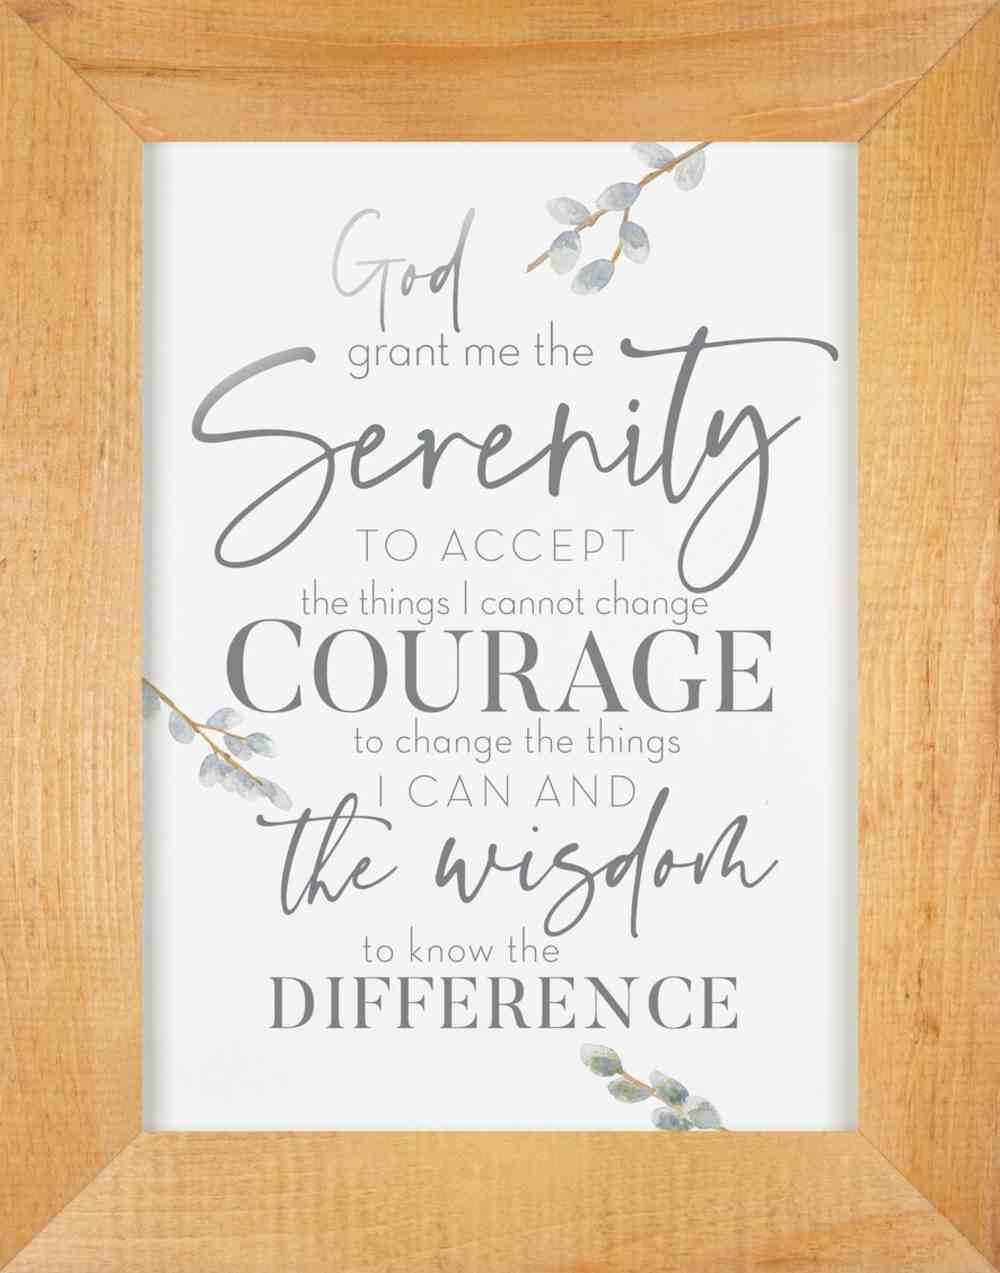 Framed Wall Art With Acrylic Insert: God Grant Me the Serenity Plaque